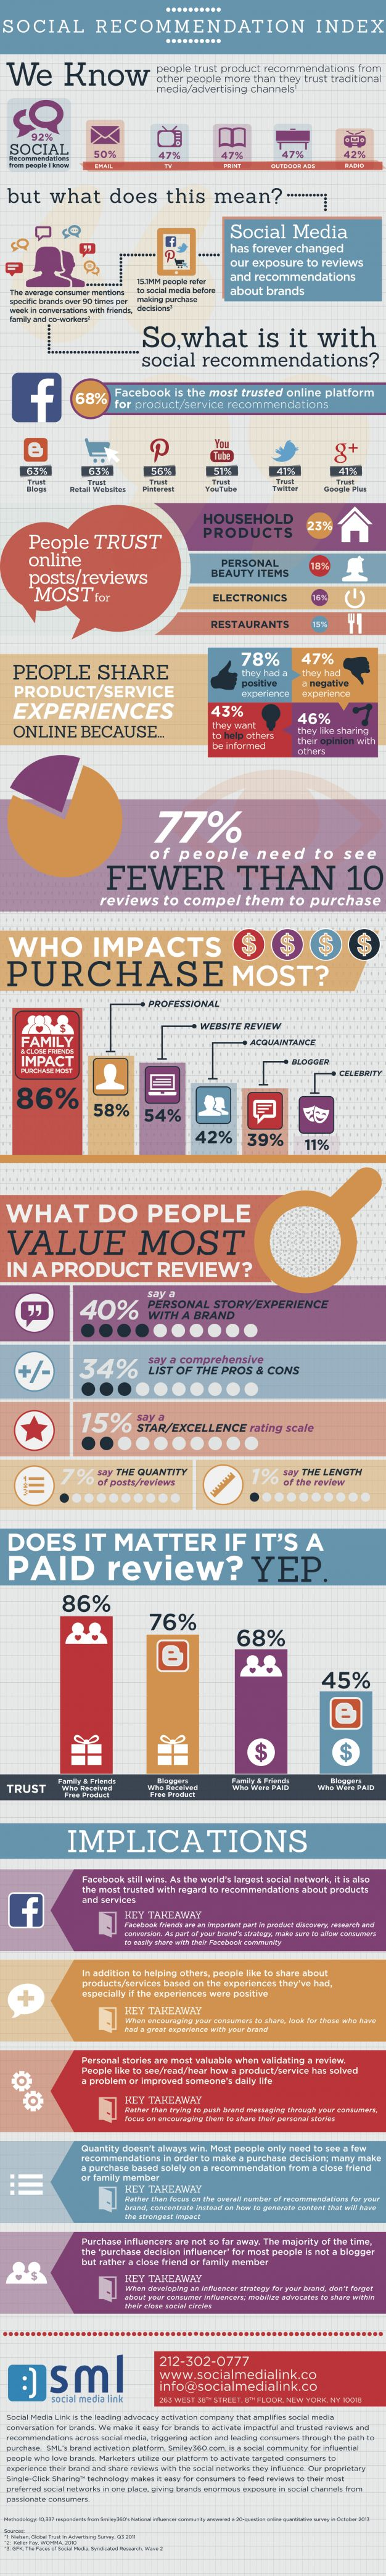 Consumers Trust Social Recommendations Over Other Channels (And Facebook Most Of All) [INFOGRAPHIC]